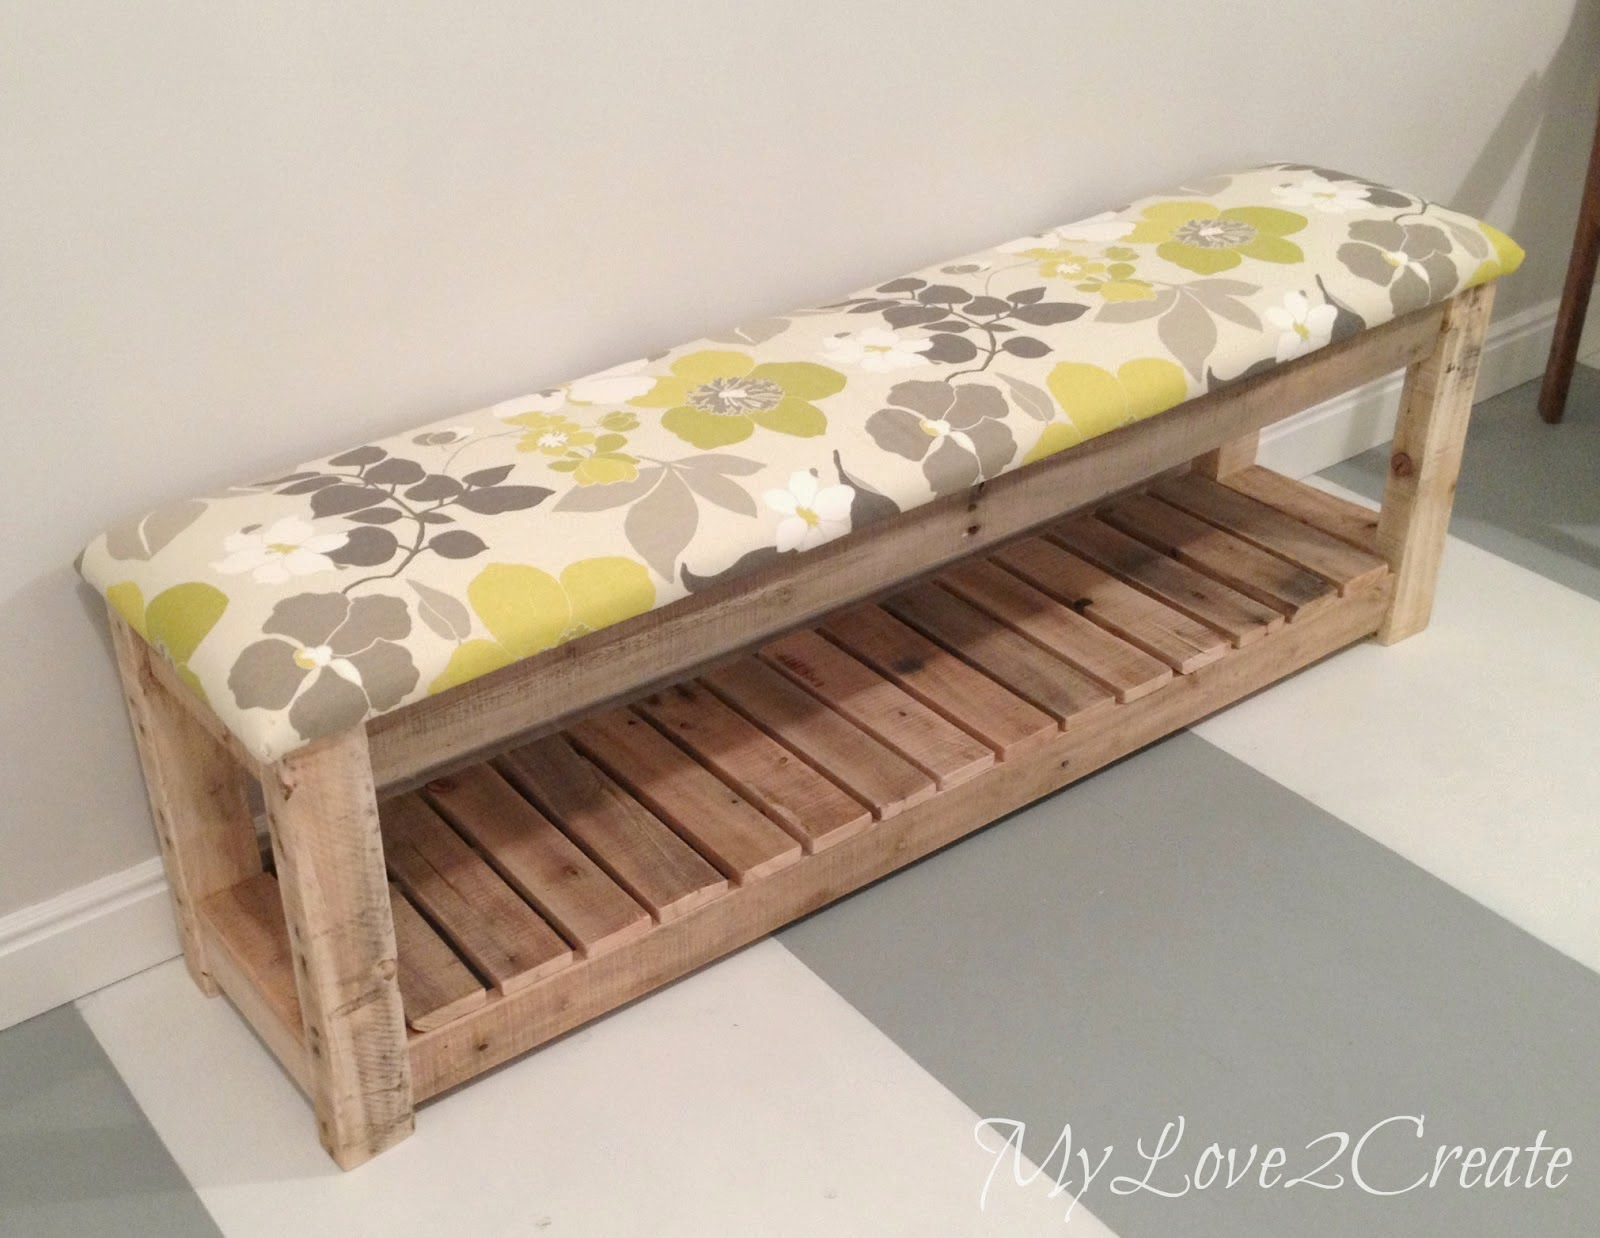 DIY Upholstered bench, shared by My Love 2 Create